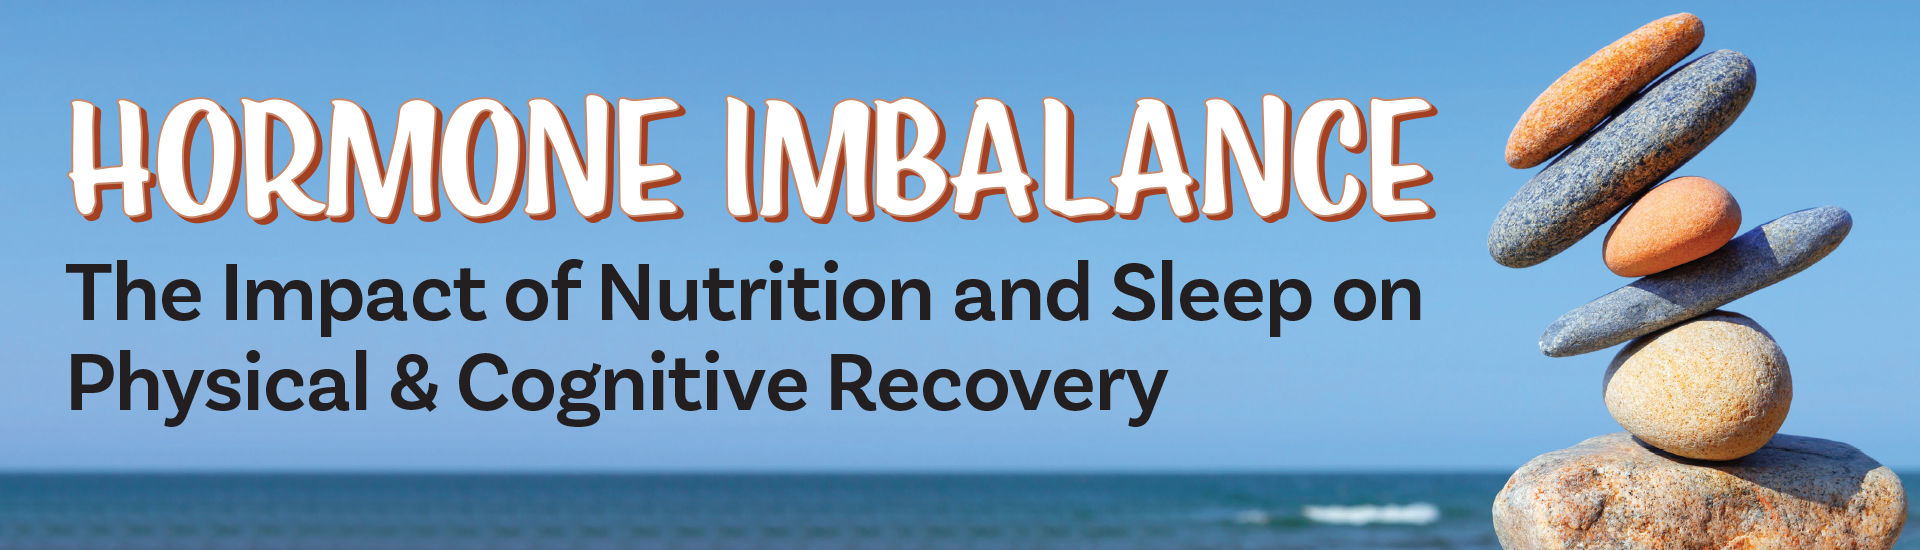 Hormone Imbalance: The Impact of Nutrition and Sleep on Physical & Cognitive Recovery